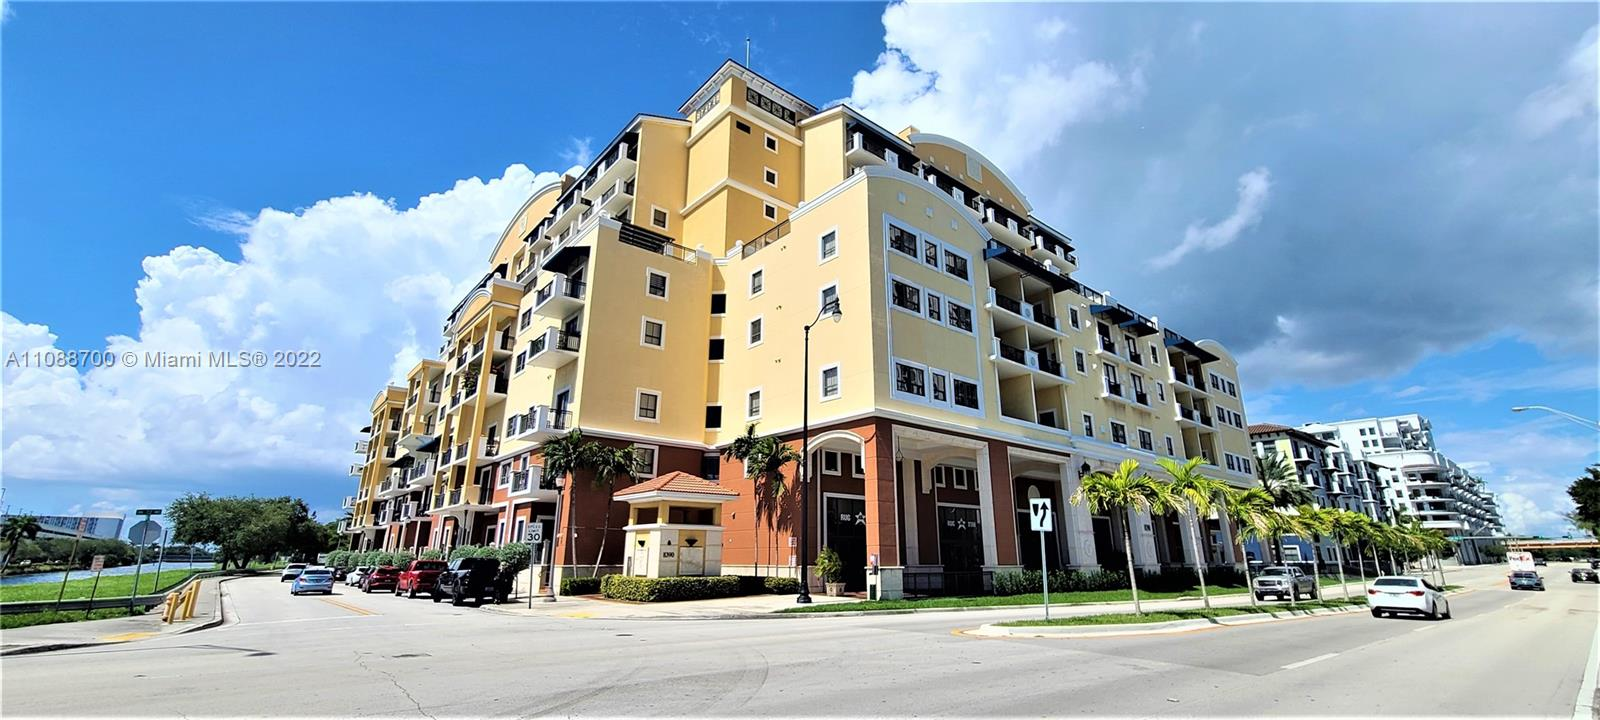 Colonnade At Dadeland SE Condo - undisclsoed 72nd Ave, Miami, FL 33143